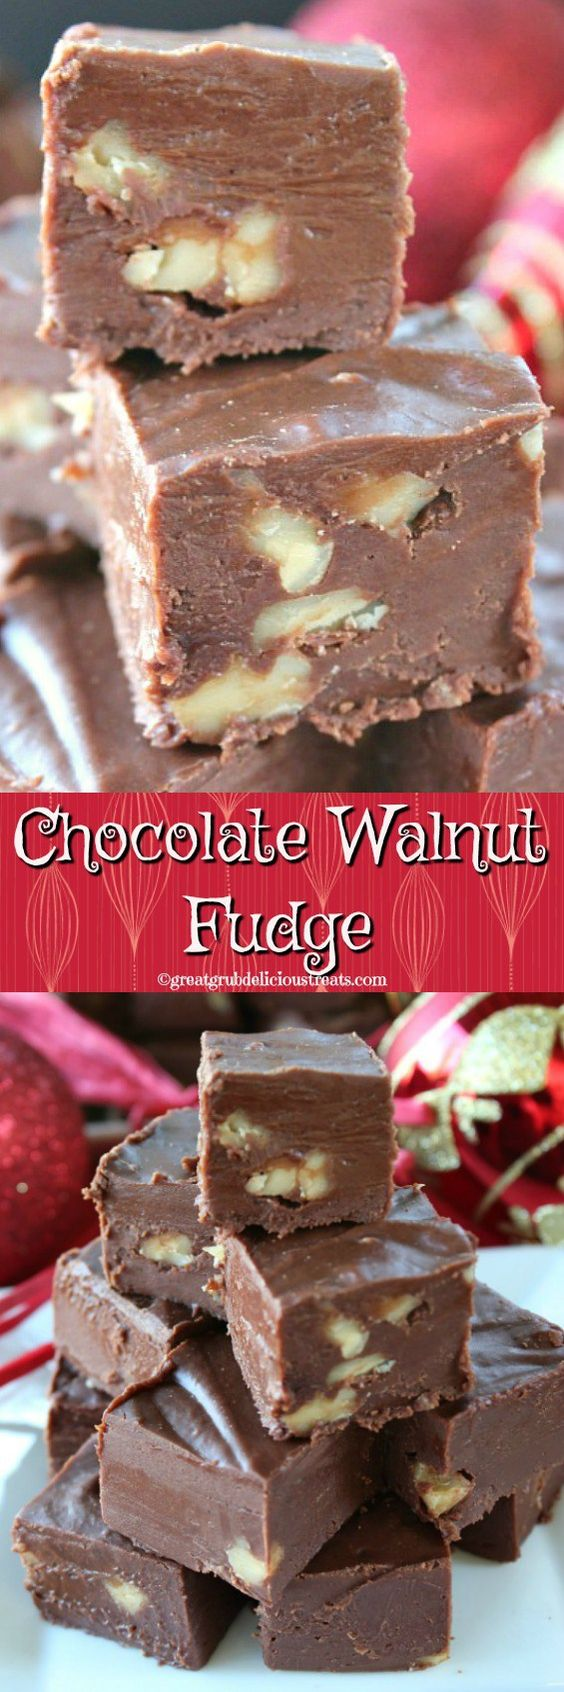 Chocolate Walnut Fudge - There's just something about a piece of rich, creamy, chocolaty fudge!